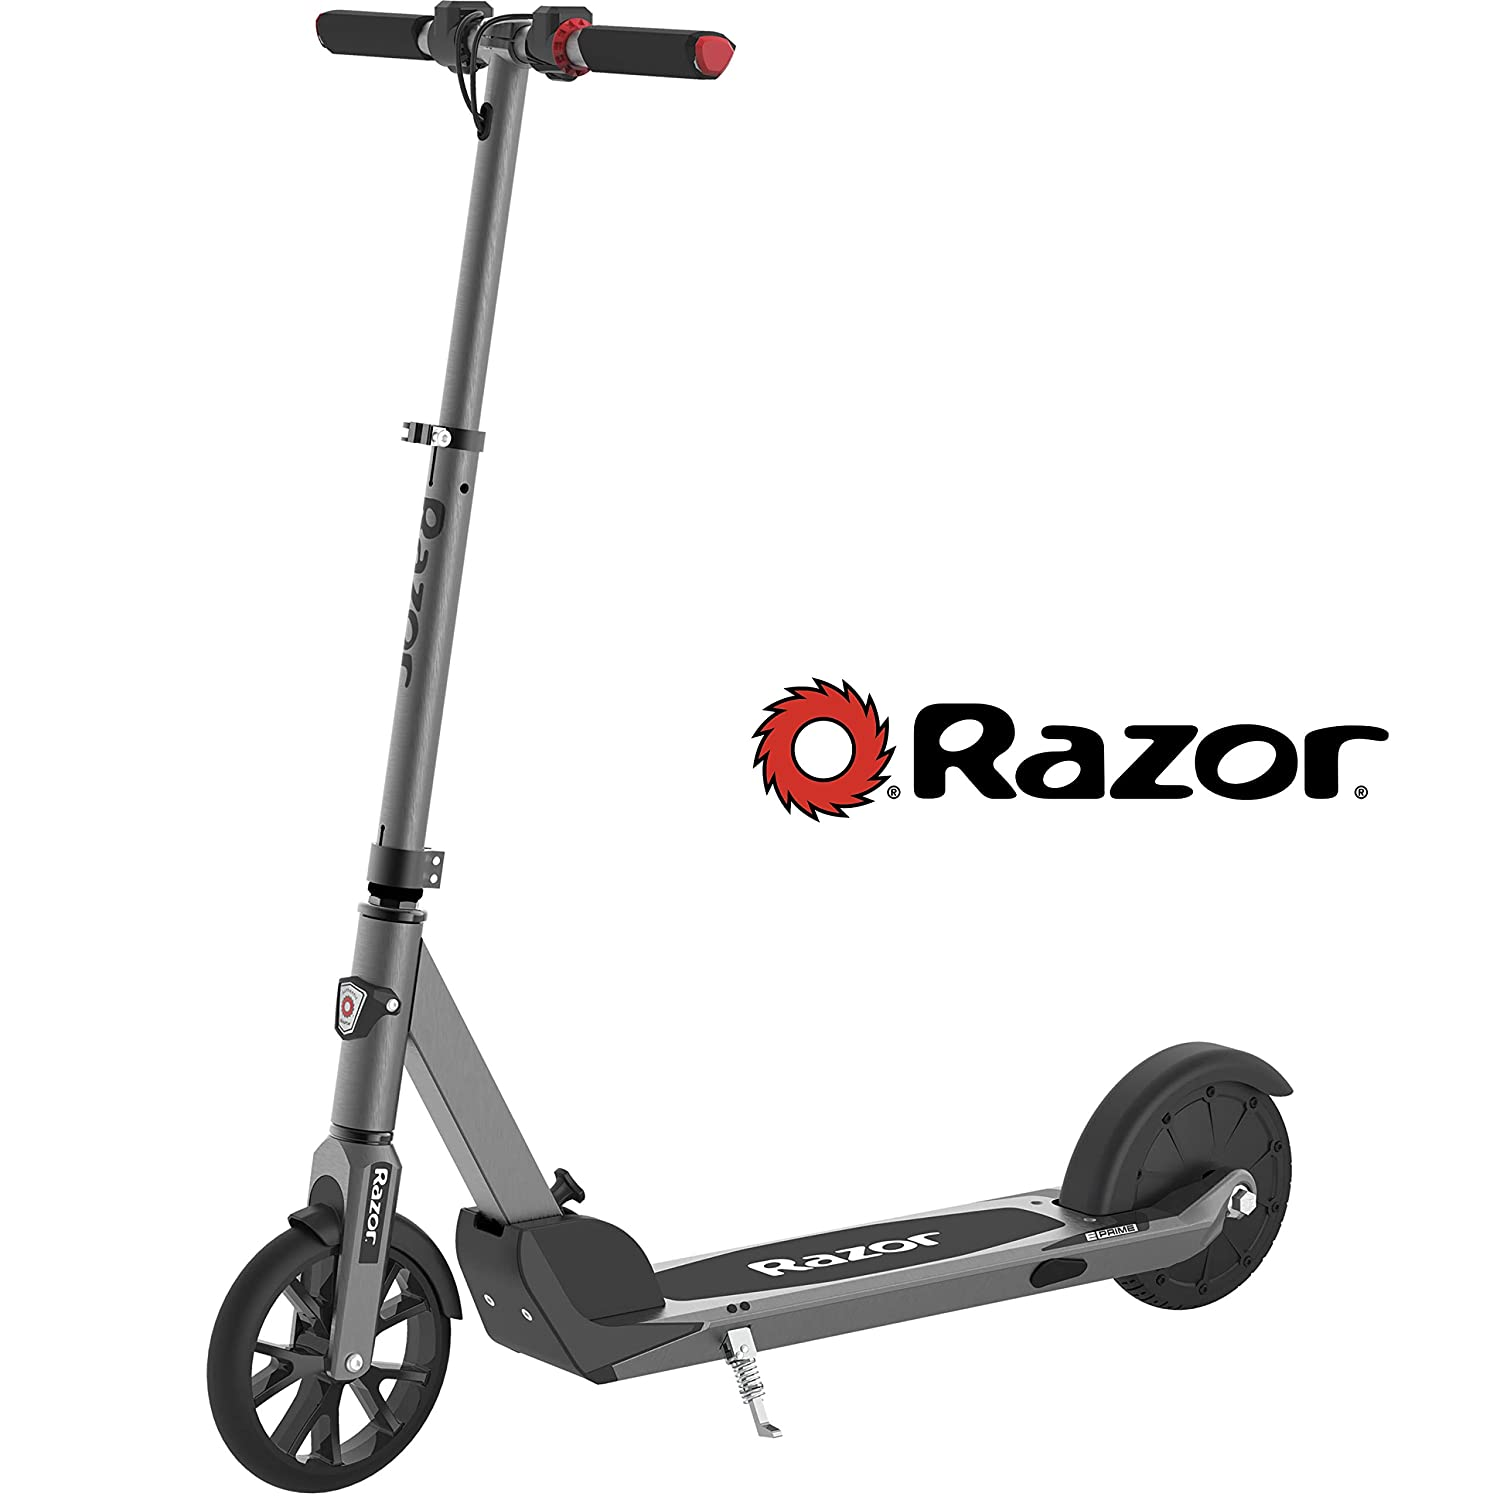 Amazon.com: Razor E Prime - Patinete eléctrico: Sports ...